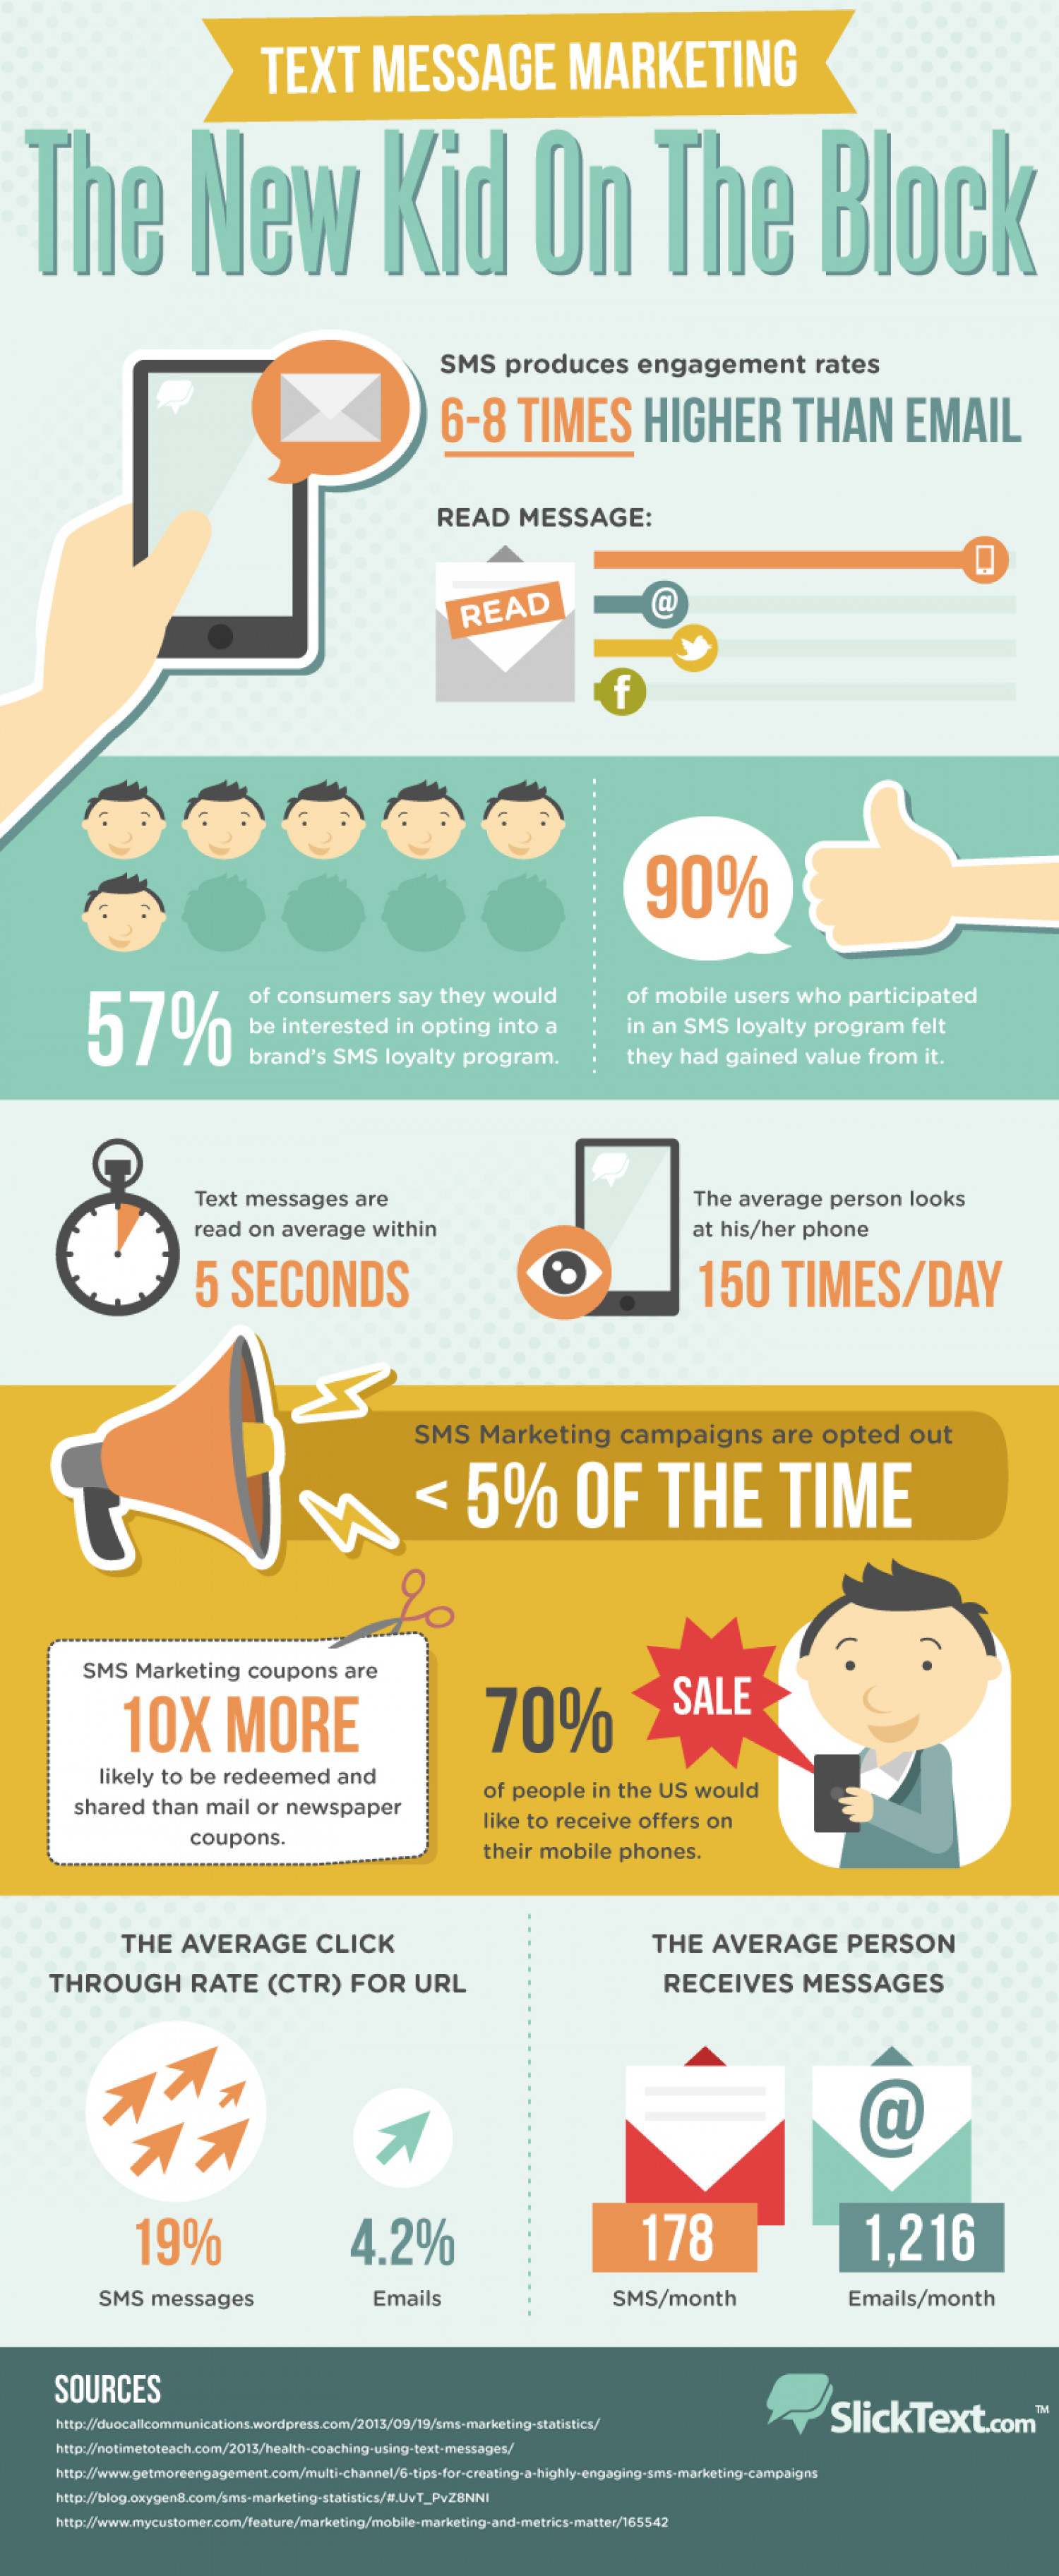 Text Message Marketing: The New Kid On The Block Infographic